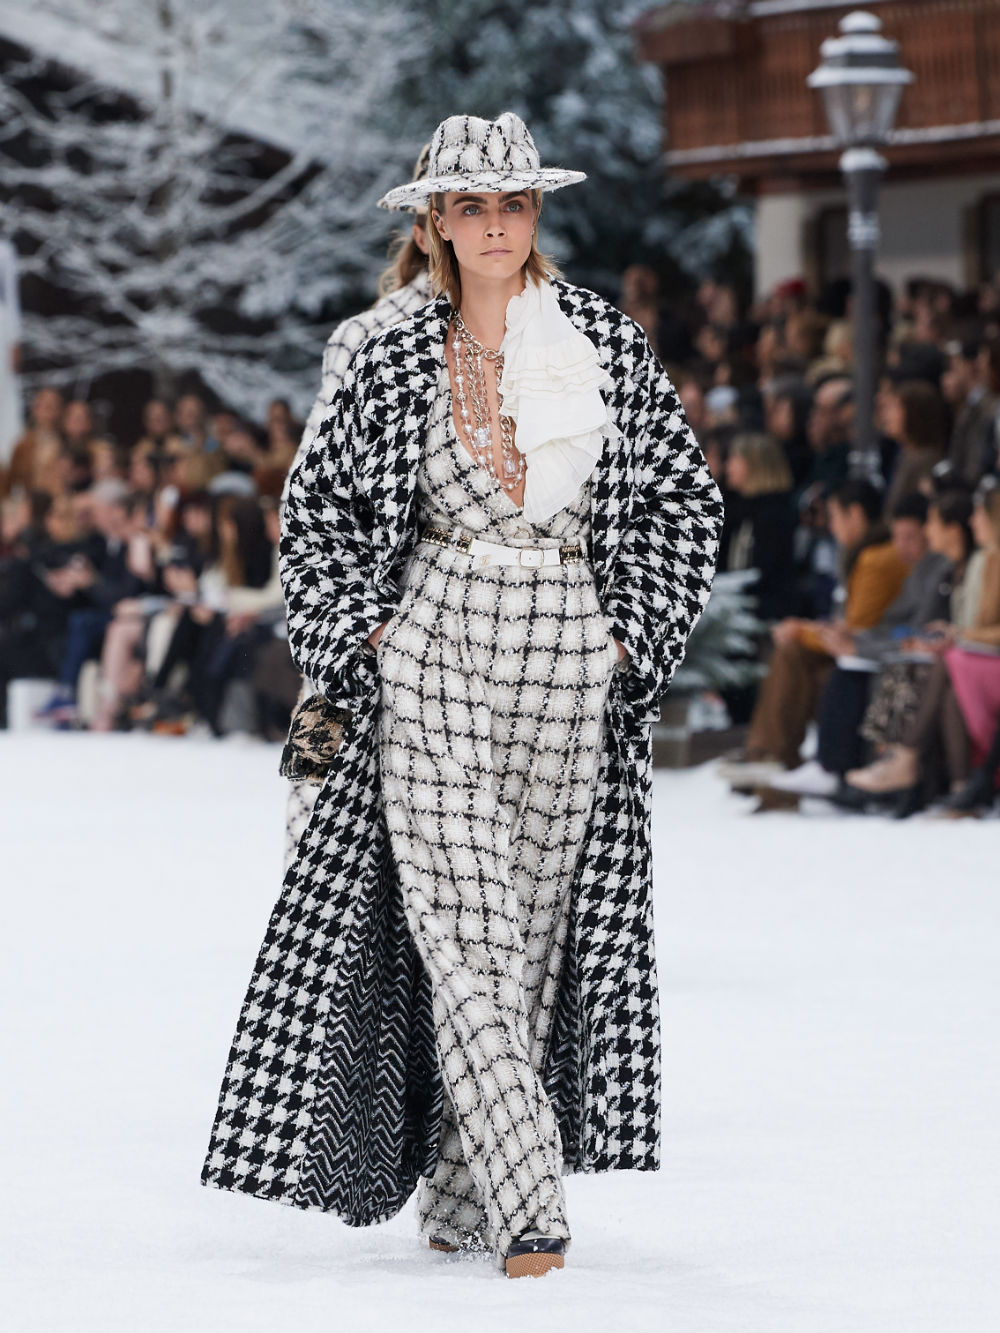 FALL-WINTER 201920 READY-TO-WEAR COLLECTION